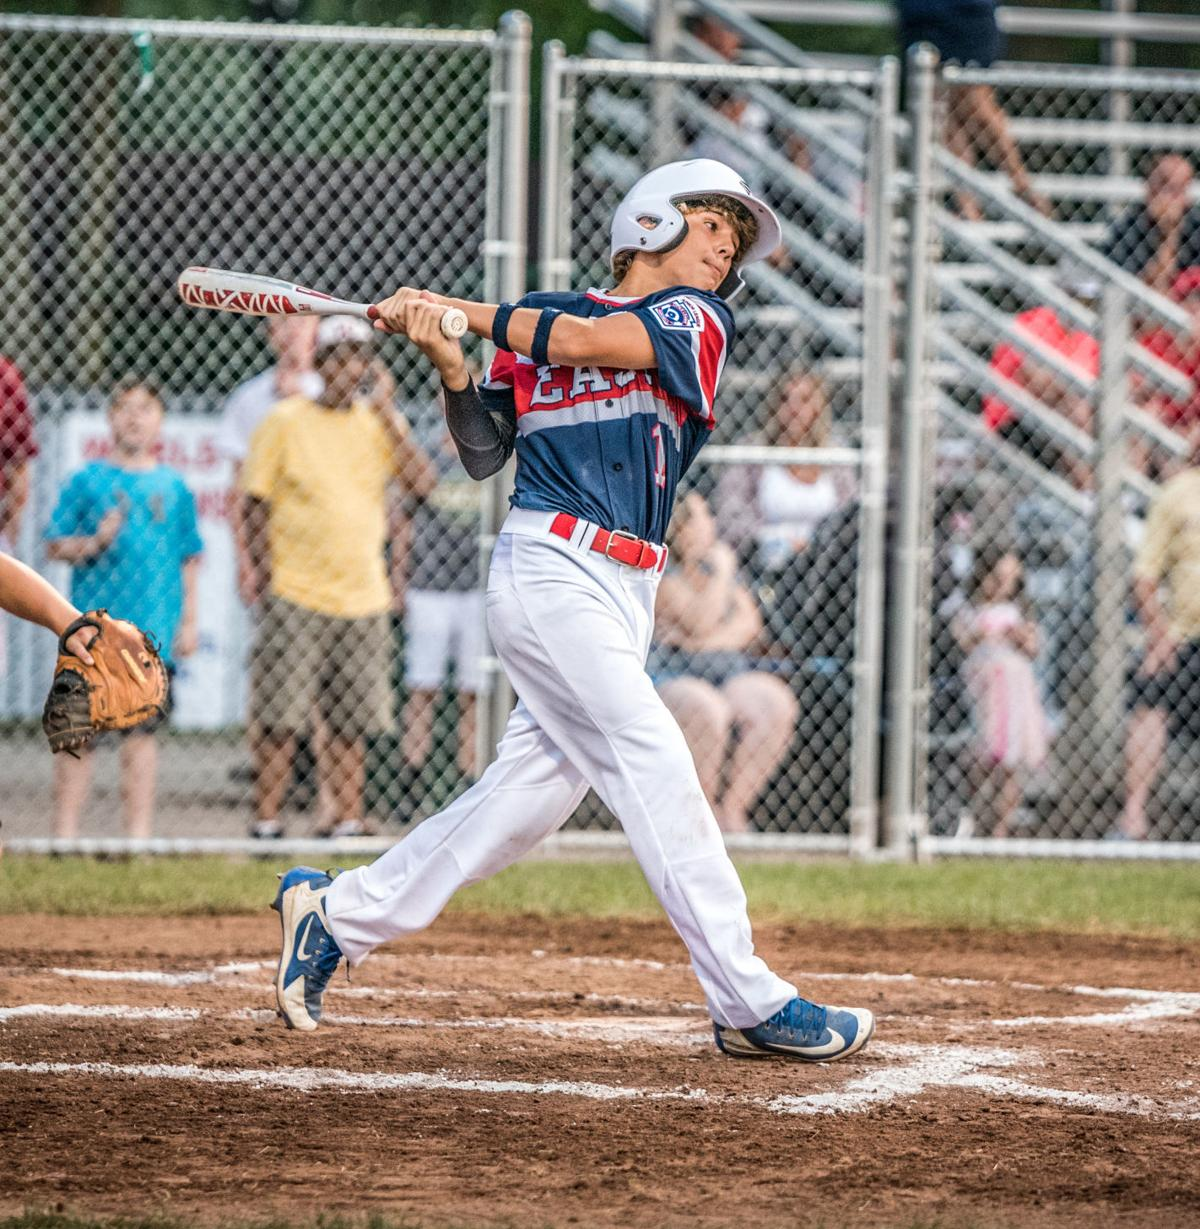 20180815-ce-sp Luke Zimmerman batting